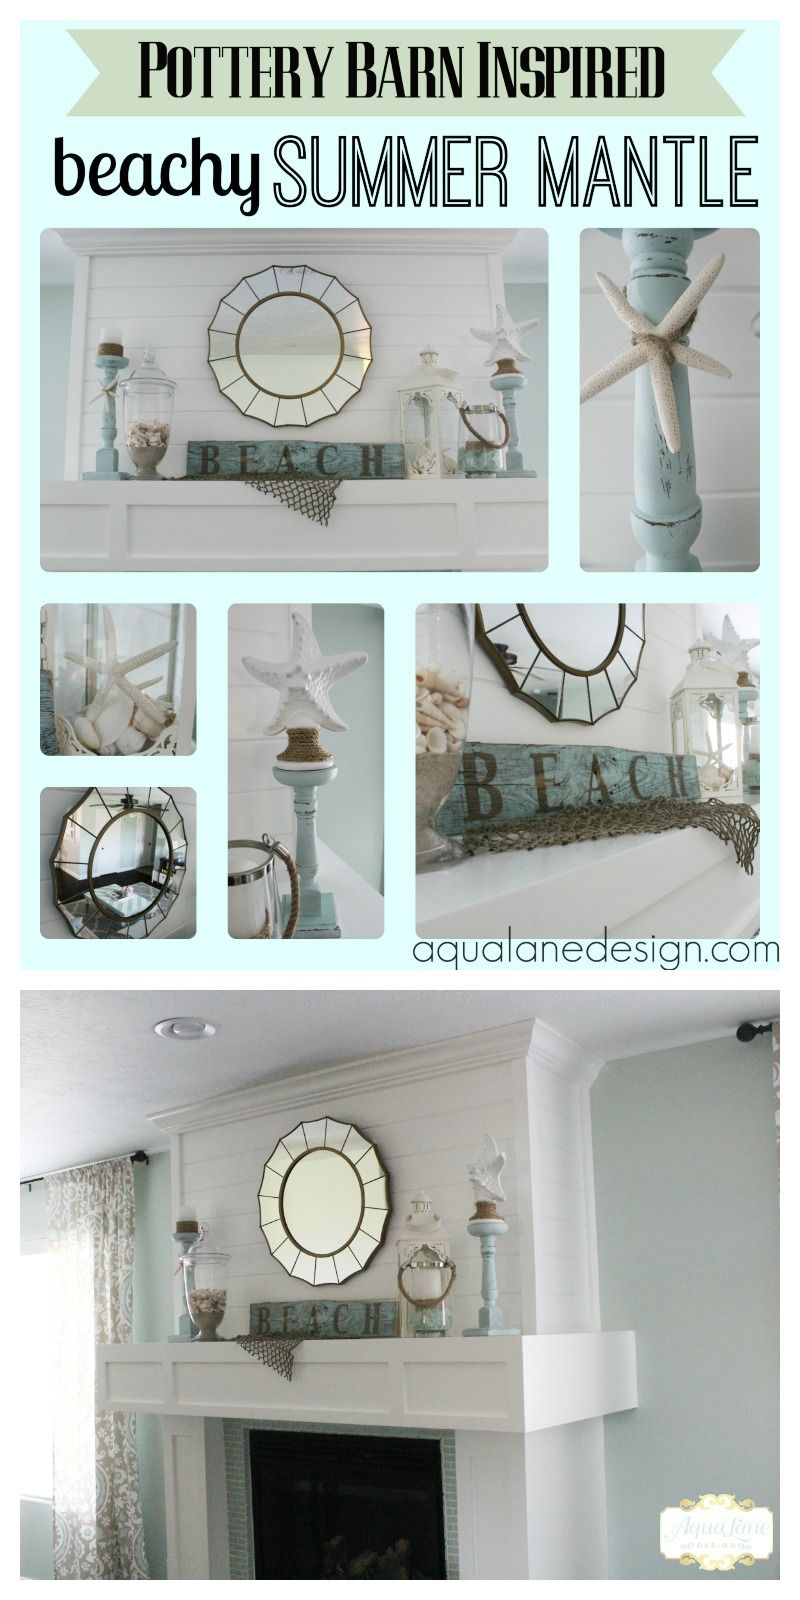 A Beachy Summer Mantle Inspired By Pottery Barn Ideas On How To